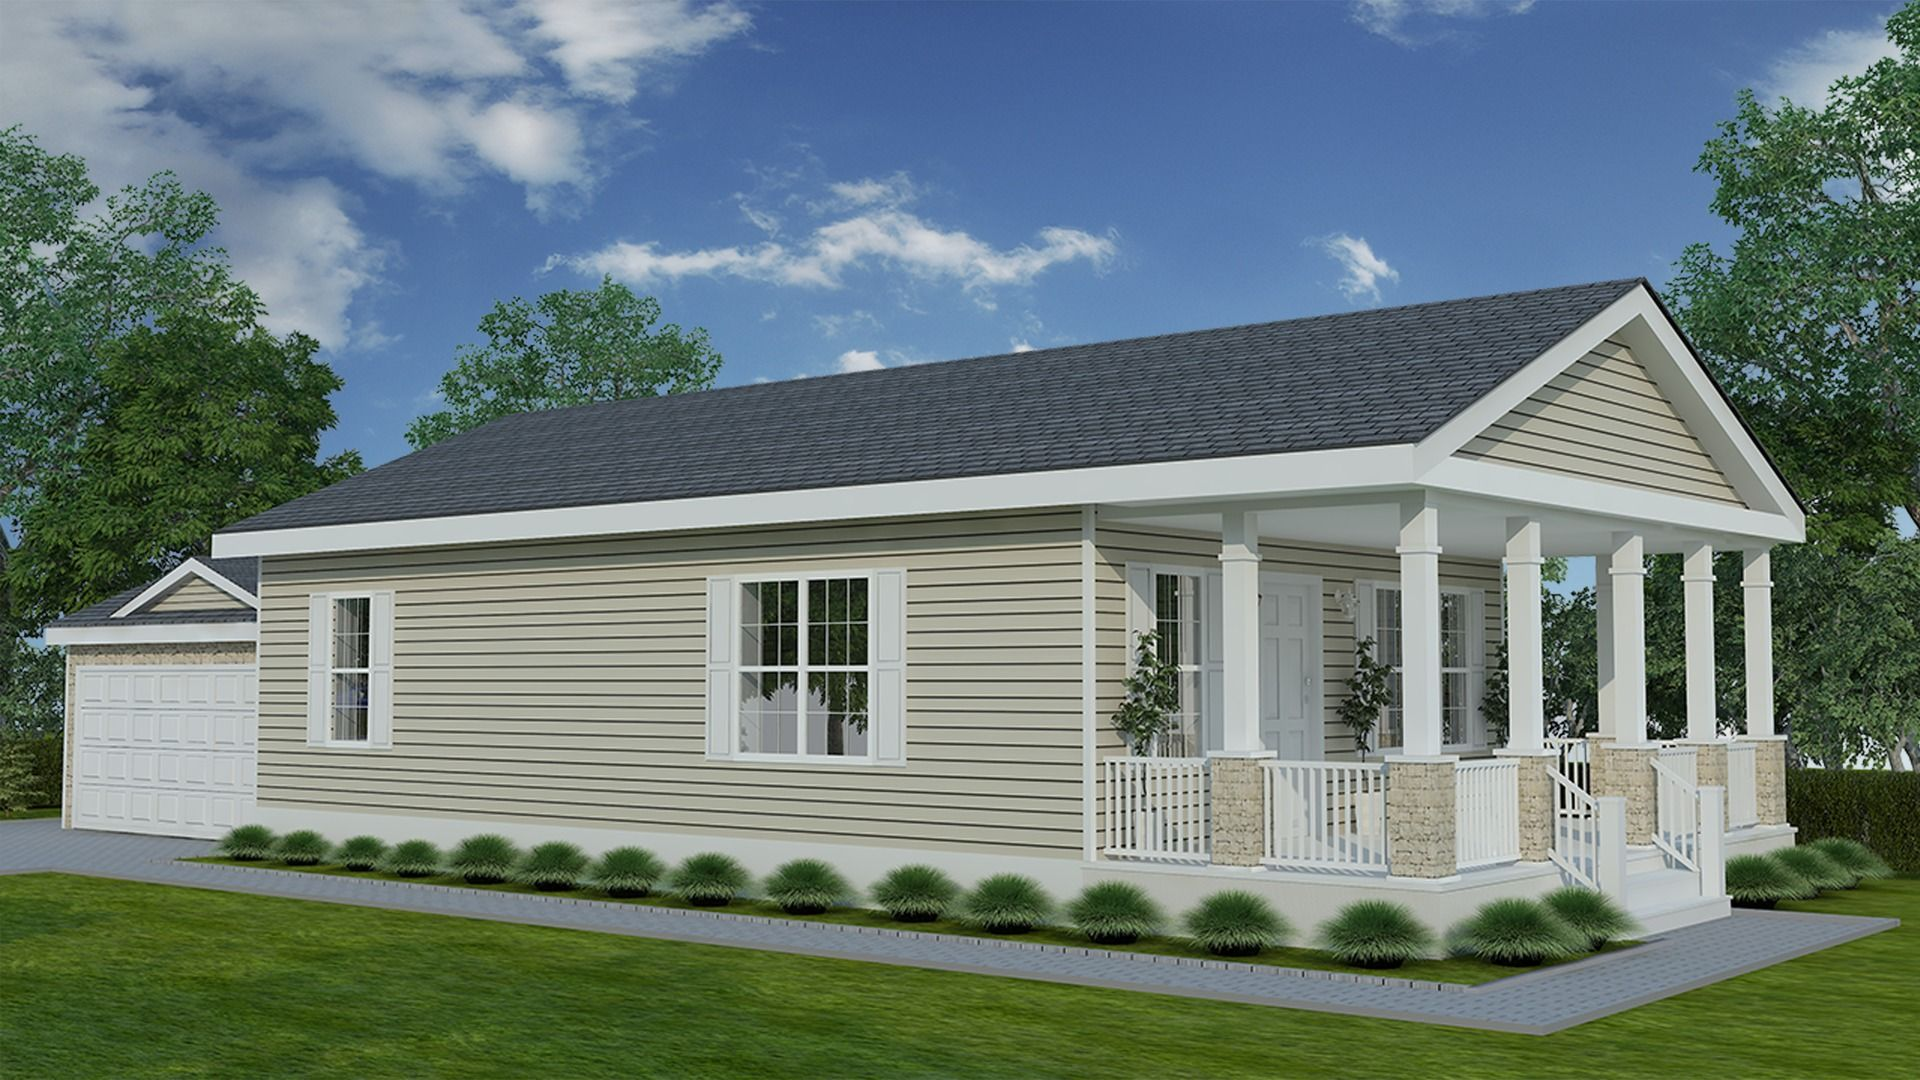 New Day Ranch Modular Home 3 Bed 2 Bath 1 067 Sf Next Modular Serving Homeowners In Indiana And Michigan Call 574 Modular Homes Modular Home Prices Home